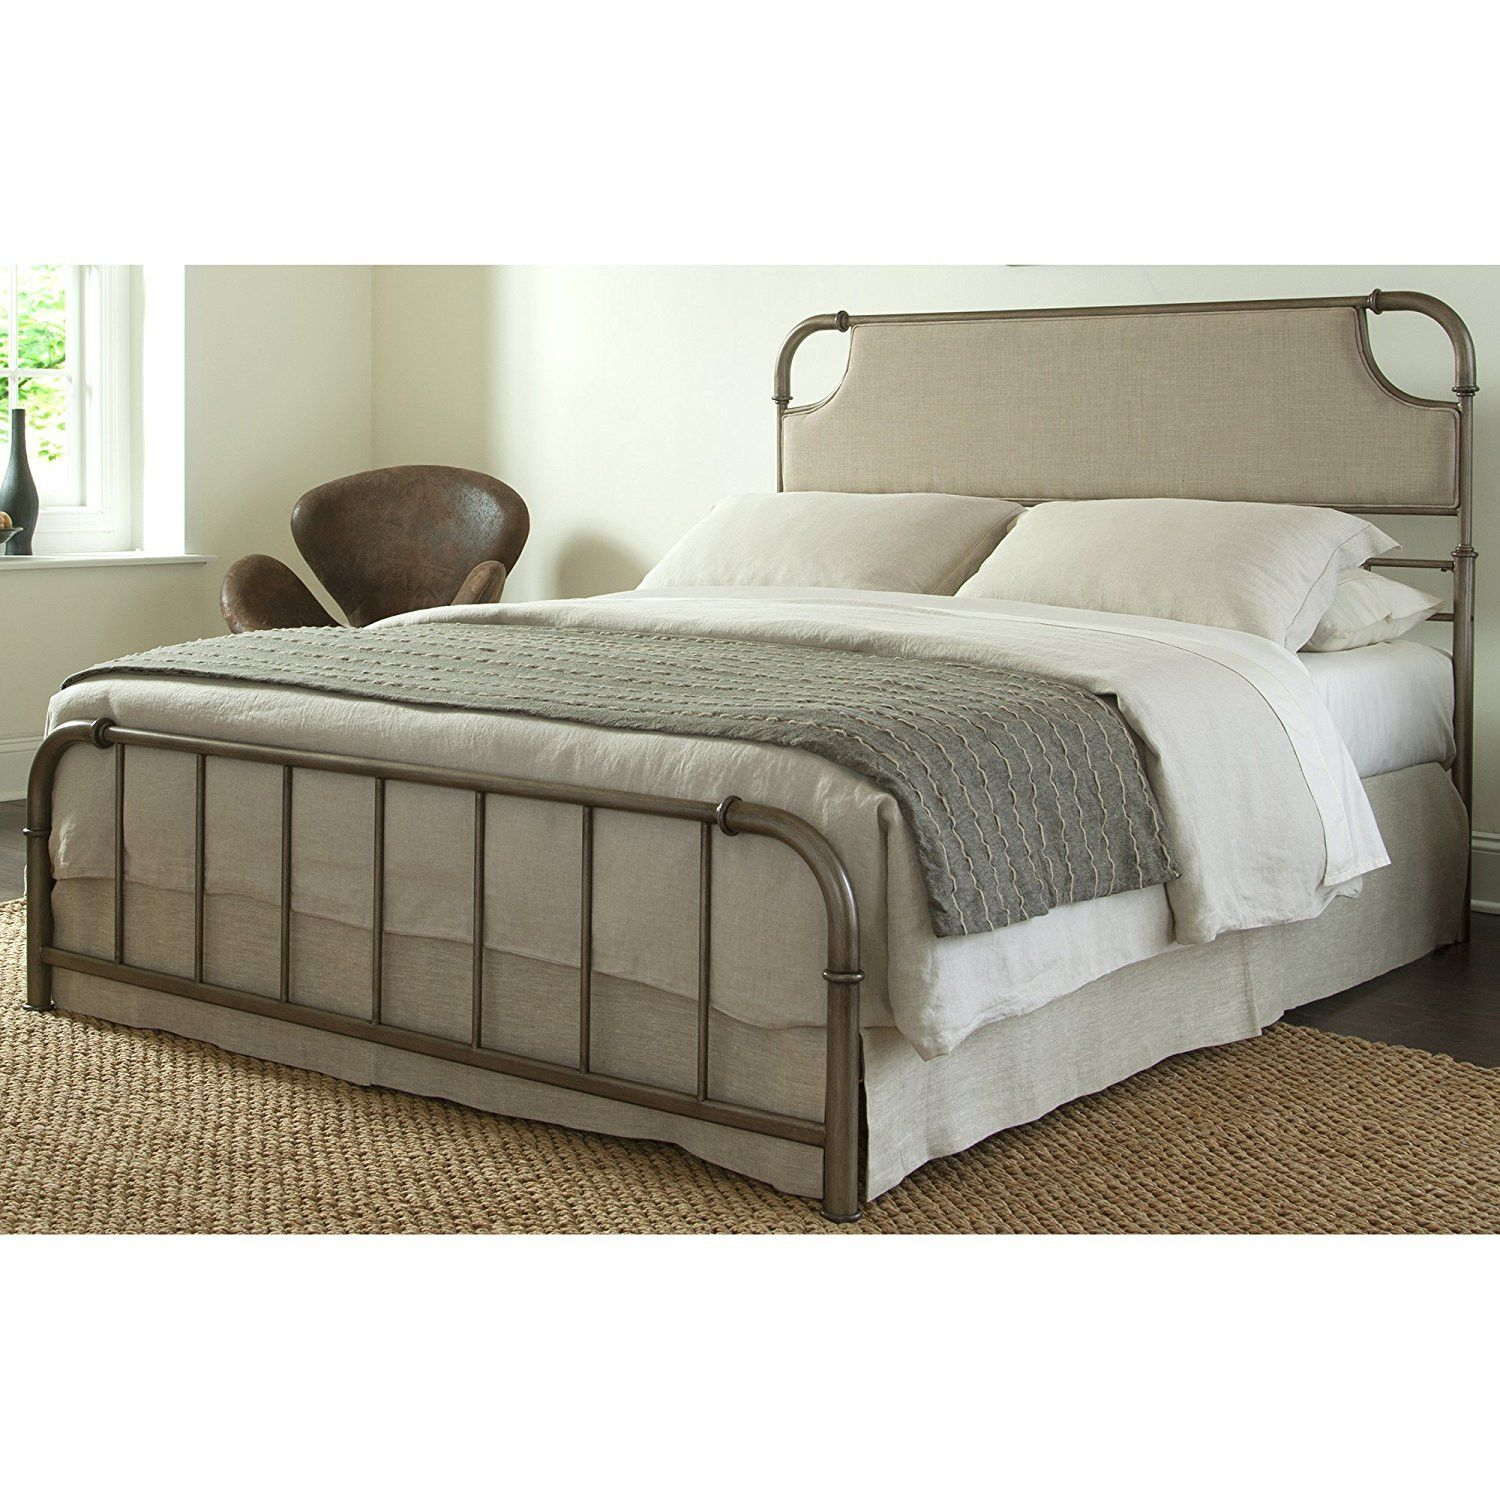 Fillmore Carbon Steel Folding Bed Frame with Headboard & Footboard ...